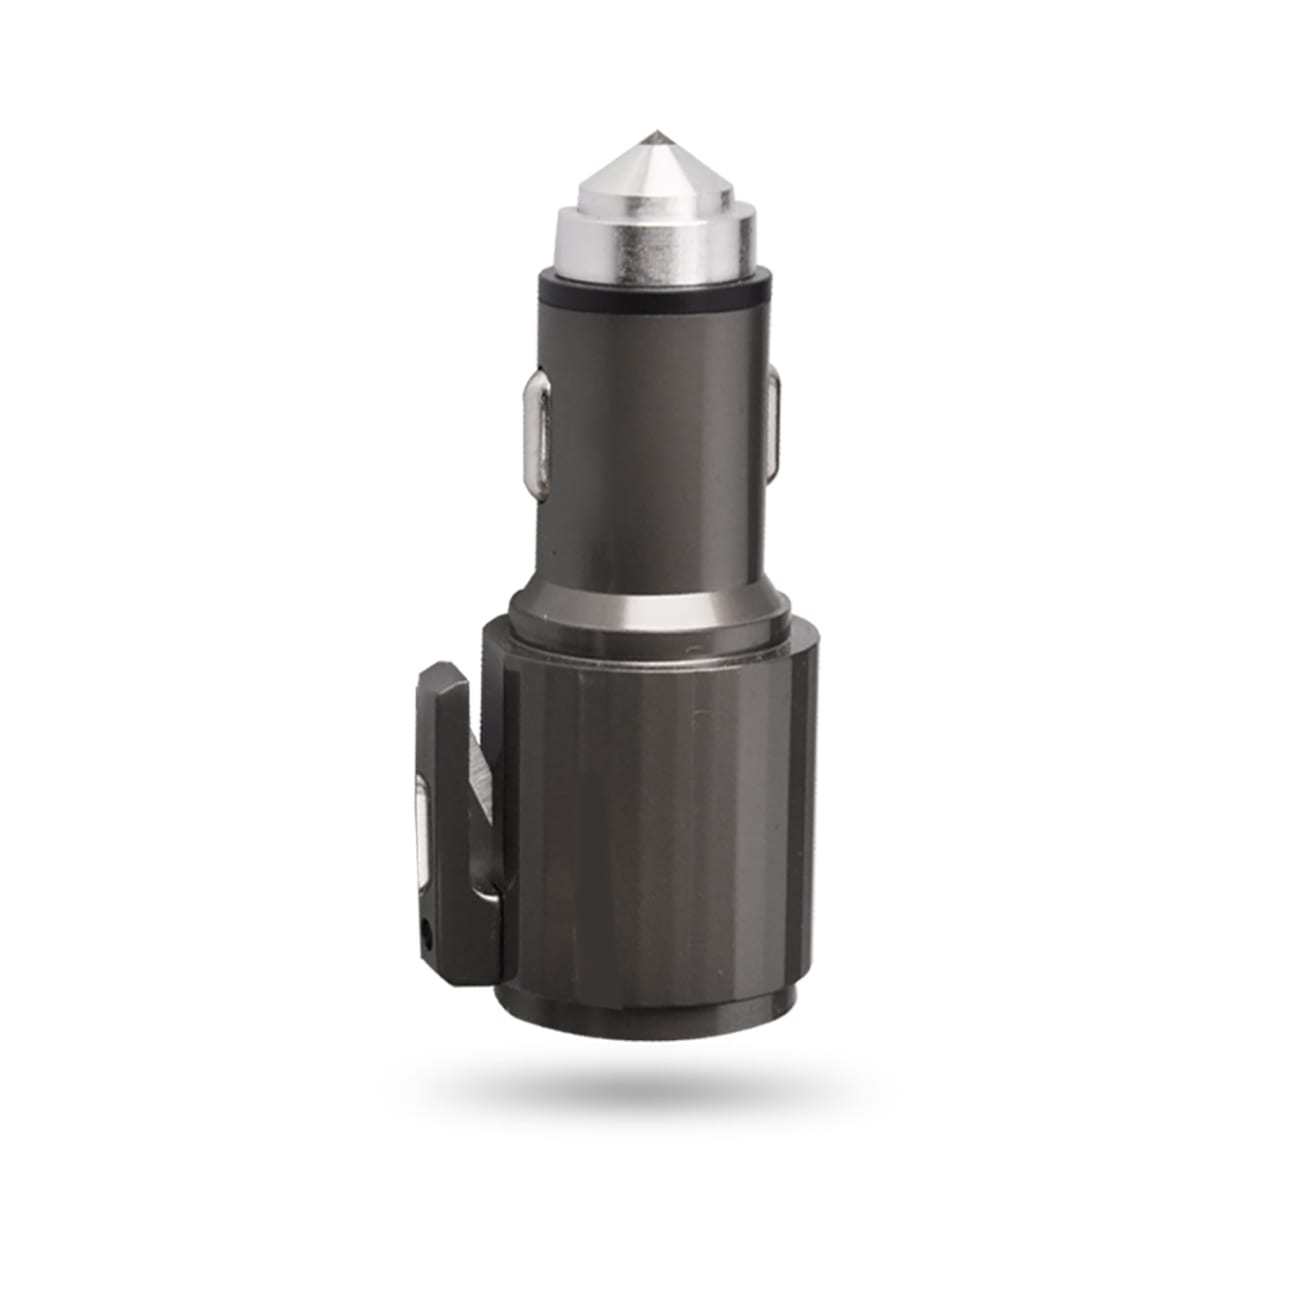 Quick Car Charger, Usb And Type-C Fast Car Charger With Life Guard Charge Technology In Gray